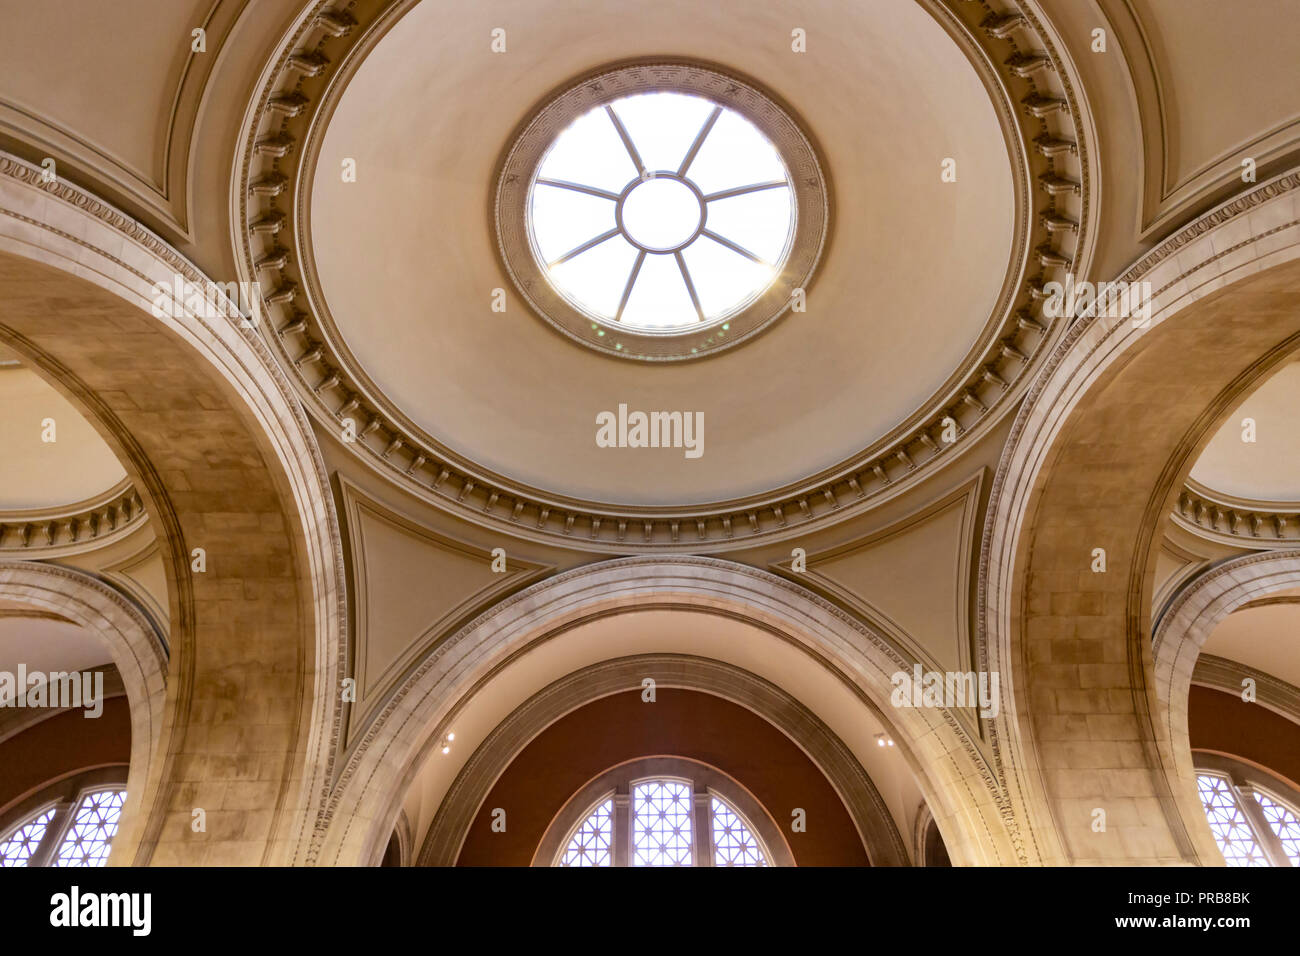 New York City, USA - October 8, 2017: Interior View of the Metropolitan Museum of Art in New York City. Stock Photo